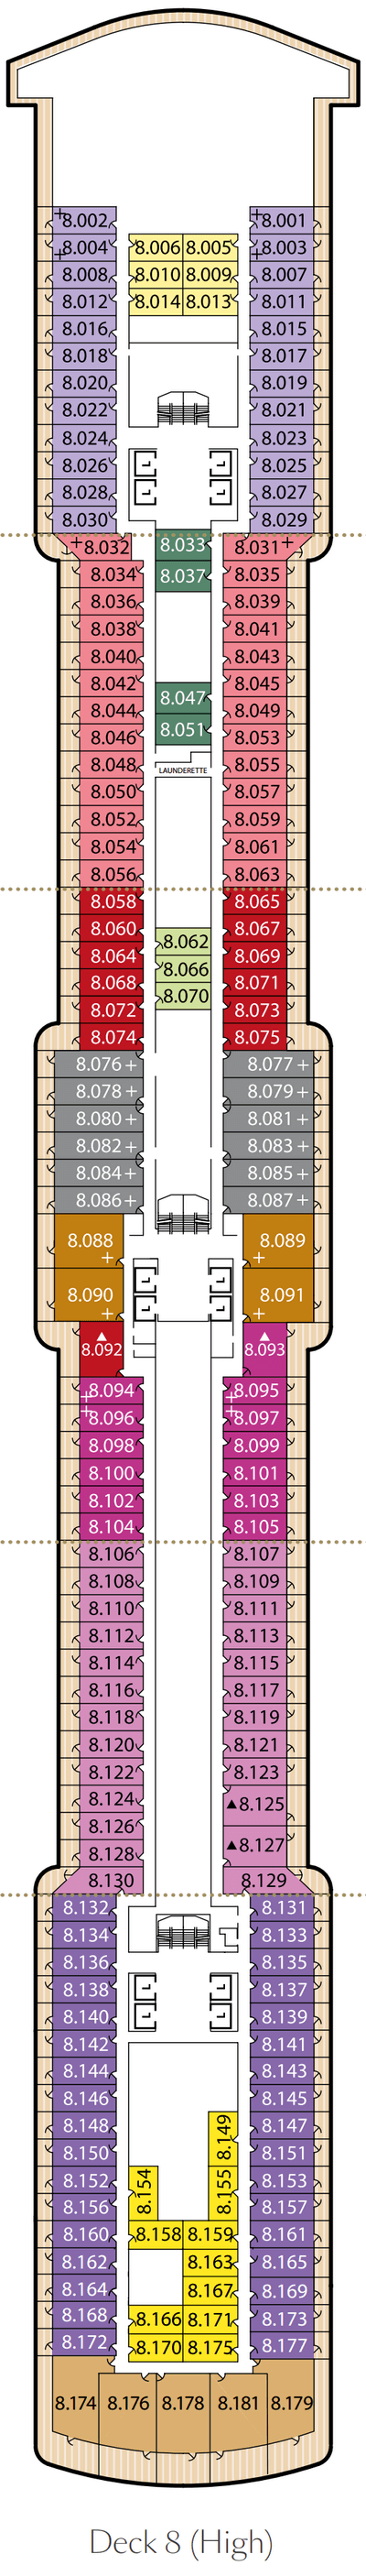 Queen Victoria Deck 8 layout